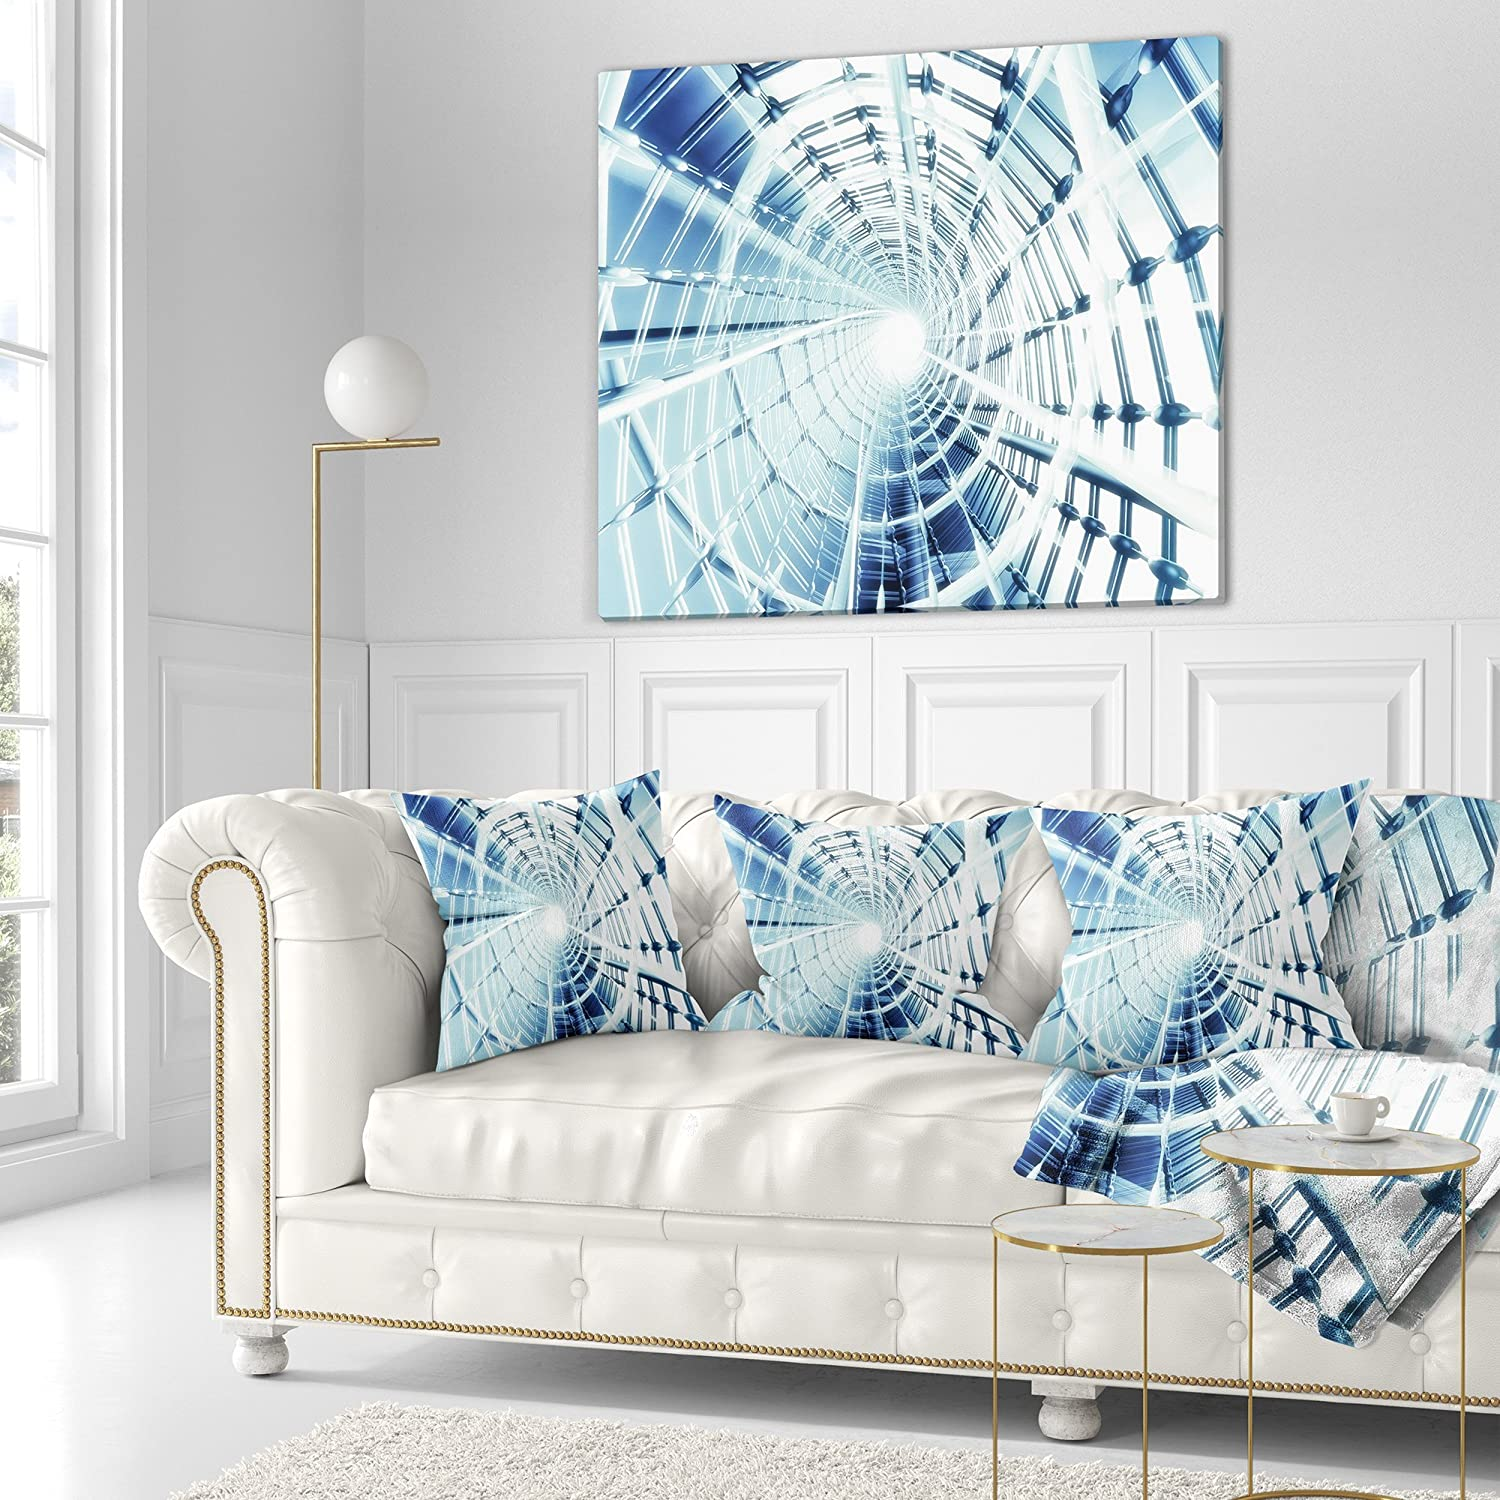 x 18 in Sofa Throw Pillow 18 in Insert Printed On Both Side in Designart CU9189-18-18 Fractal 3D Network Spiral Contemporary Cushion Cover for Living Room